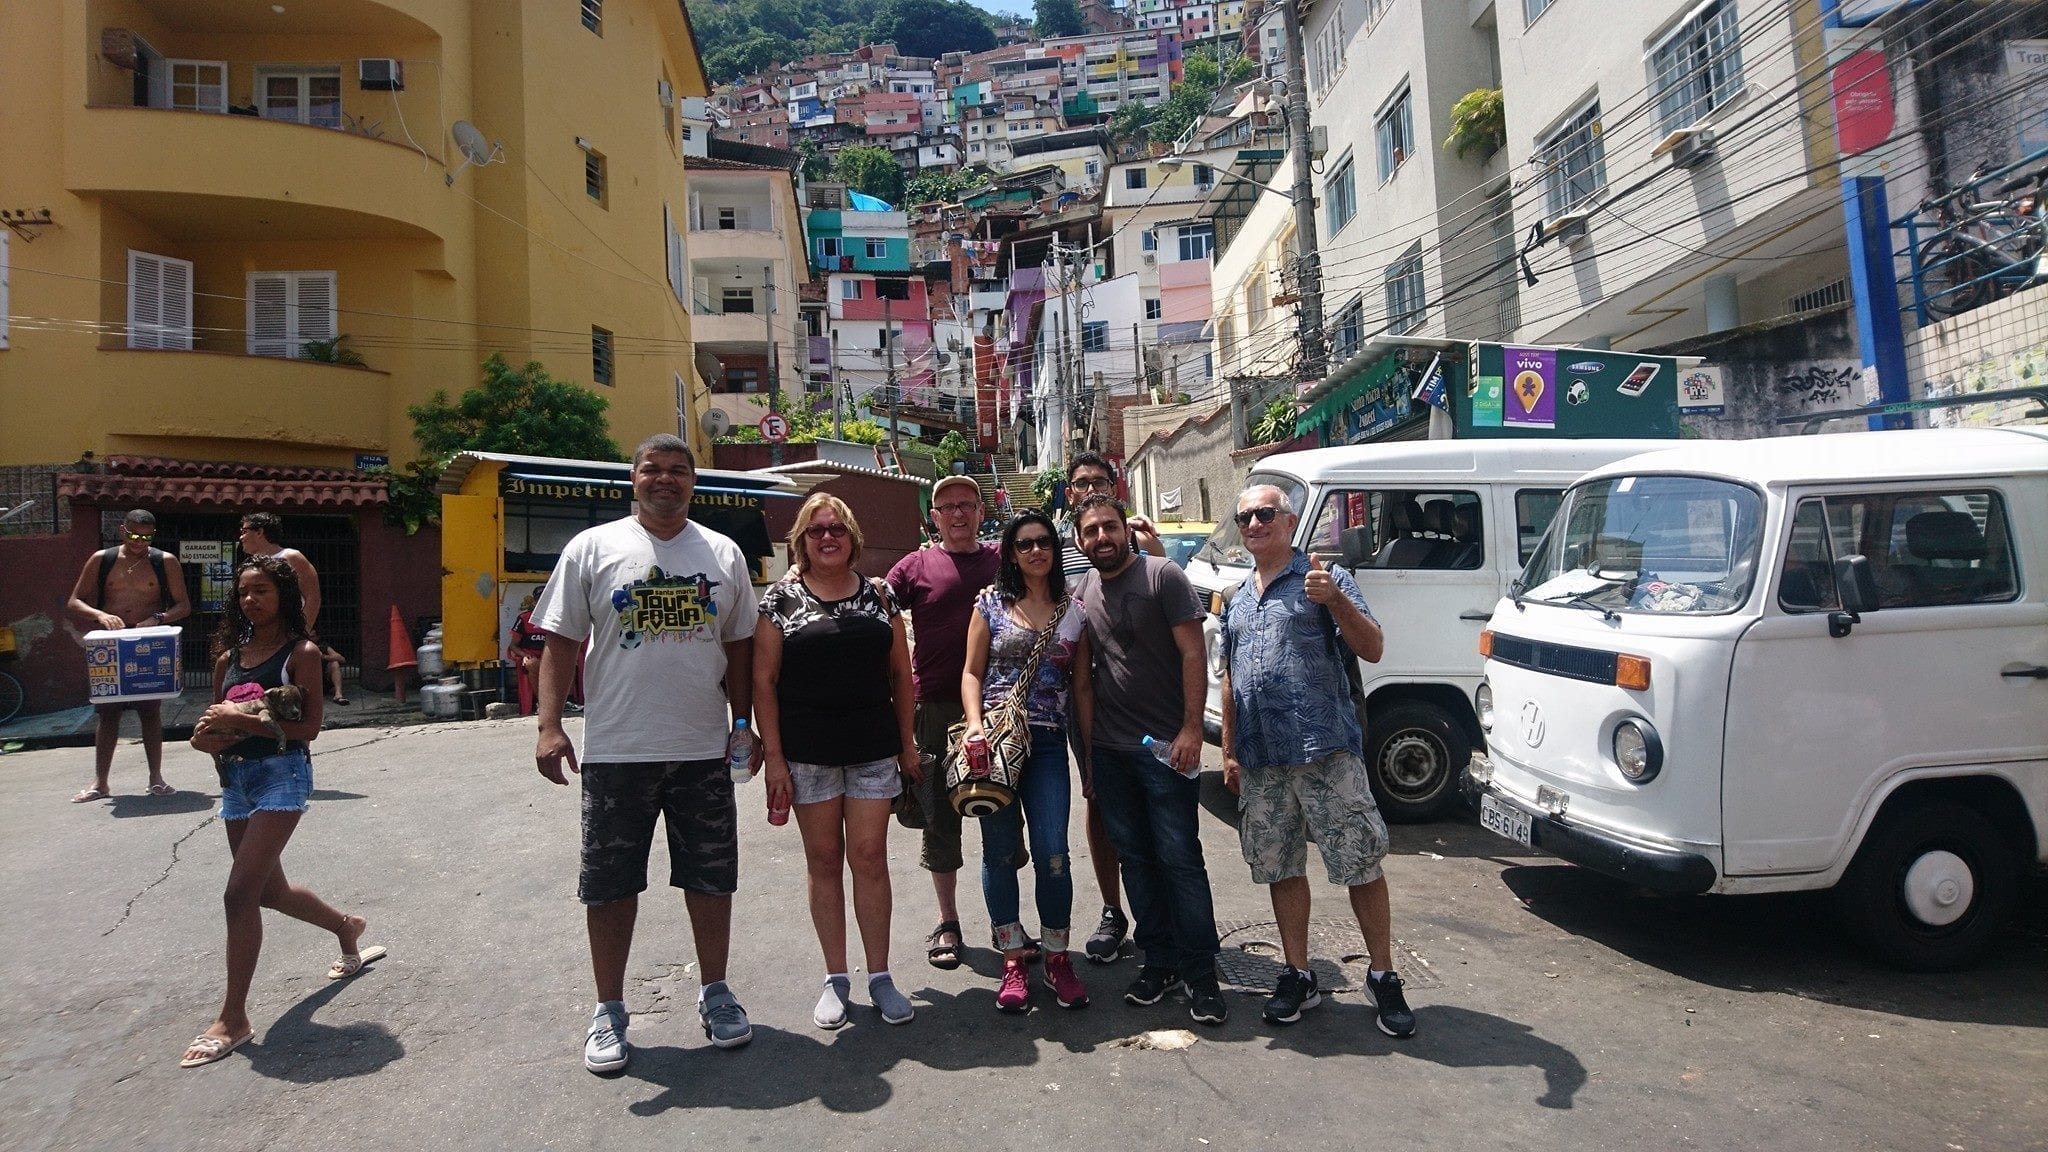 Favela Santa Marta like a local